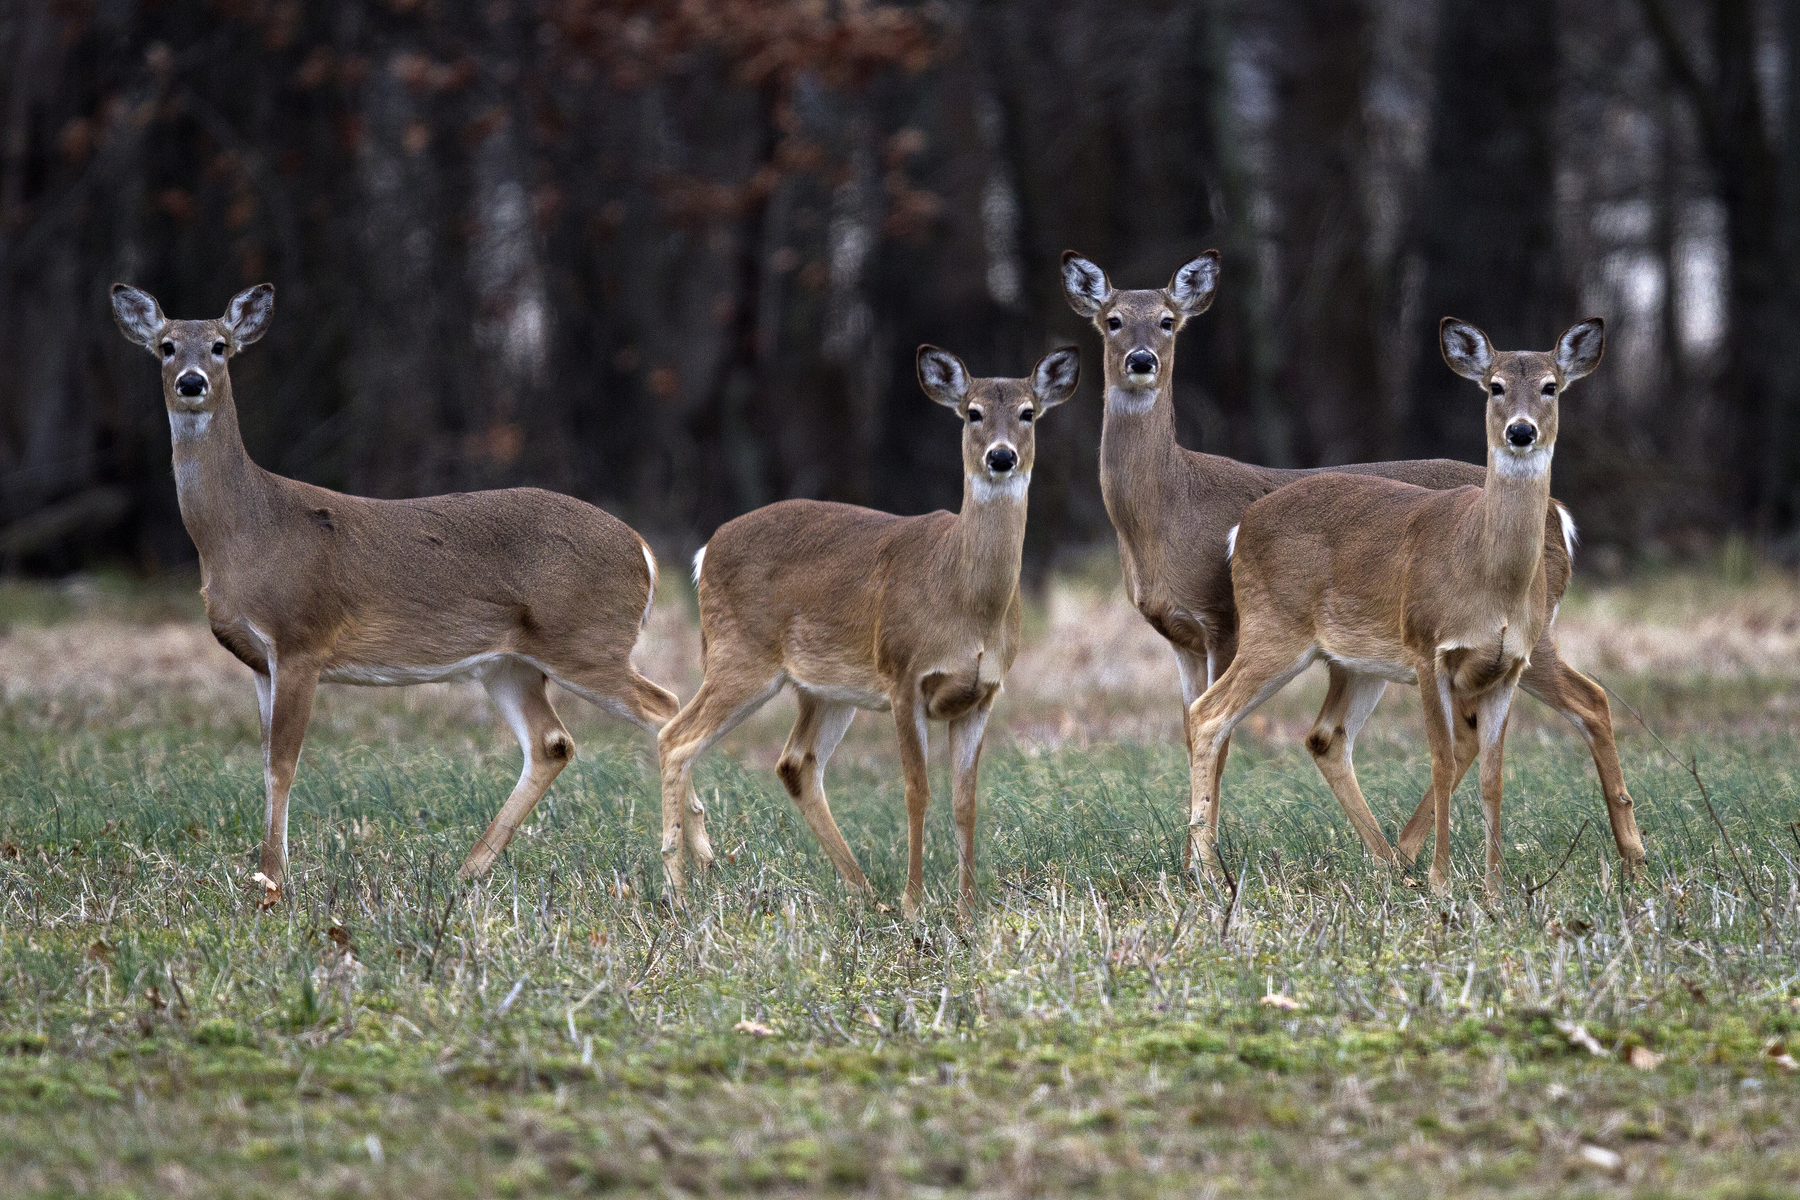 Healthy deer. Photo by Susan Post, INHS.